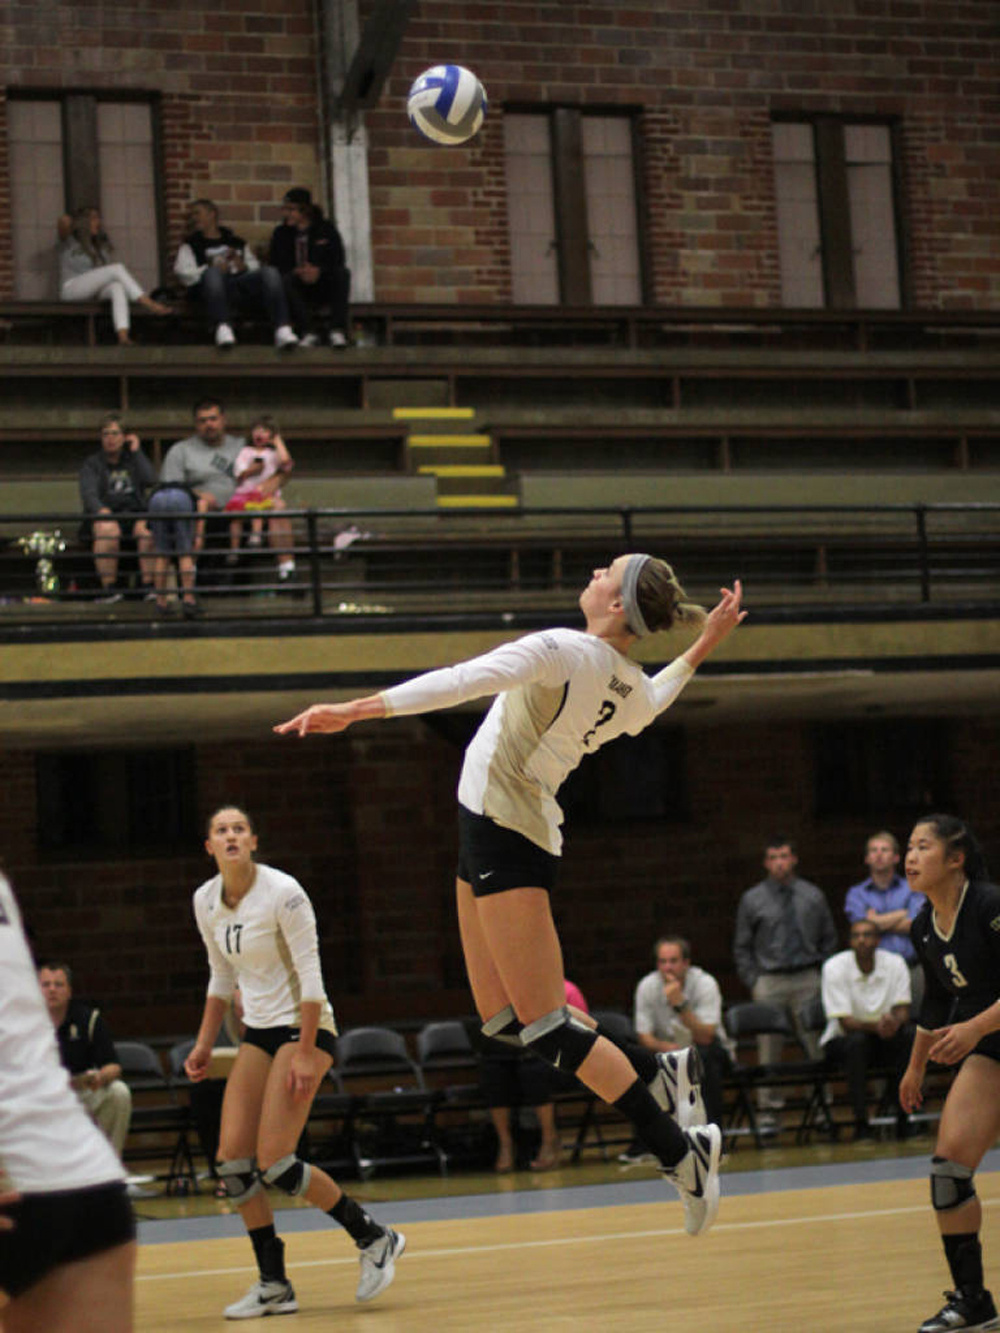 Idaho Volleyball Continues Conference Success The Spokesman Review